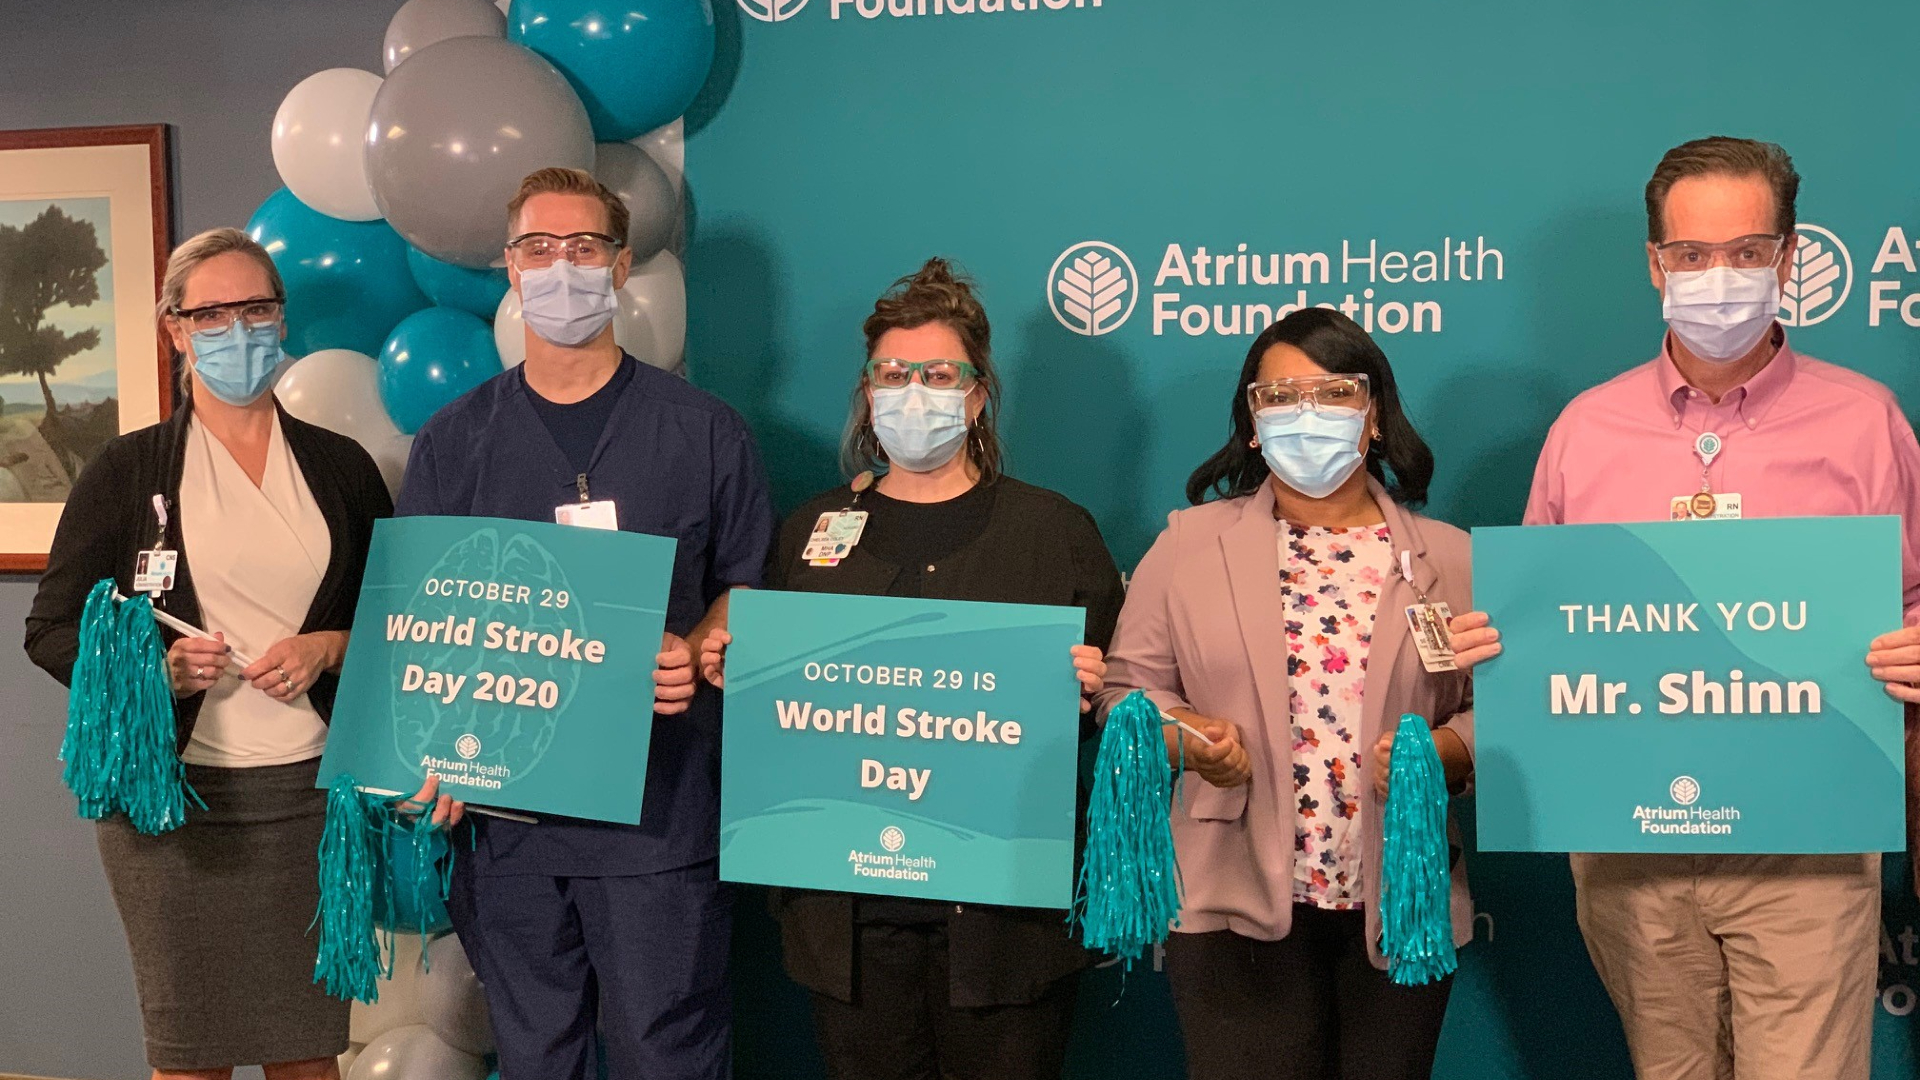 In conjunction with World Stroke Day, Atrium Health Foundation today announced a transformational gift from George Shinn in support of Atrium Health's regional stroke network. In recognition of the $7.5 million gift, Atrium Health will name its stroke center in honor of George Shinn.